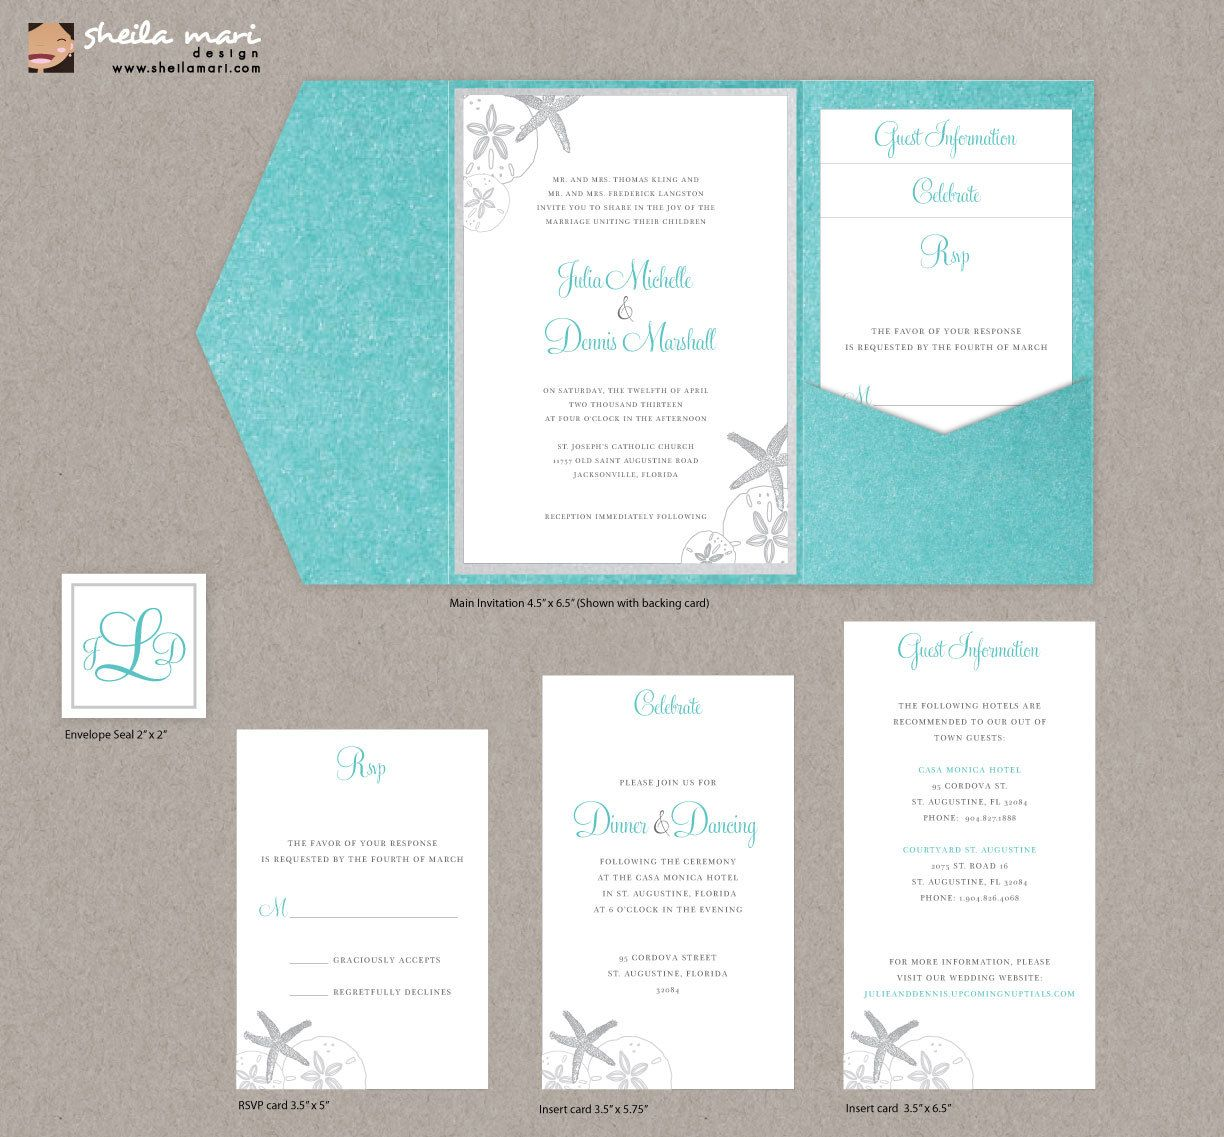 Diy Custom Wedding Invitation Suite Beach Sea Shells Design Etsy Wedding Invitations Diy Wedding Invitations Custom Wedding Invitations